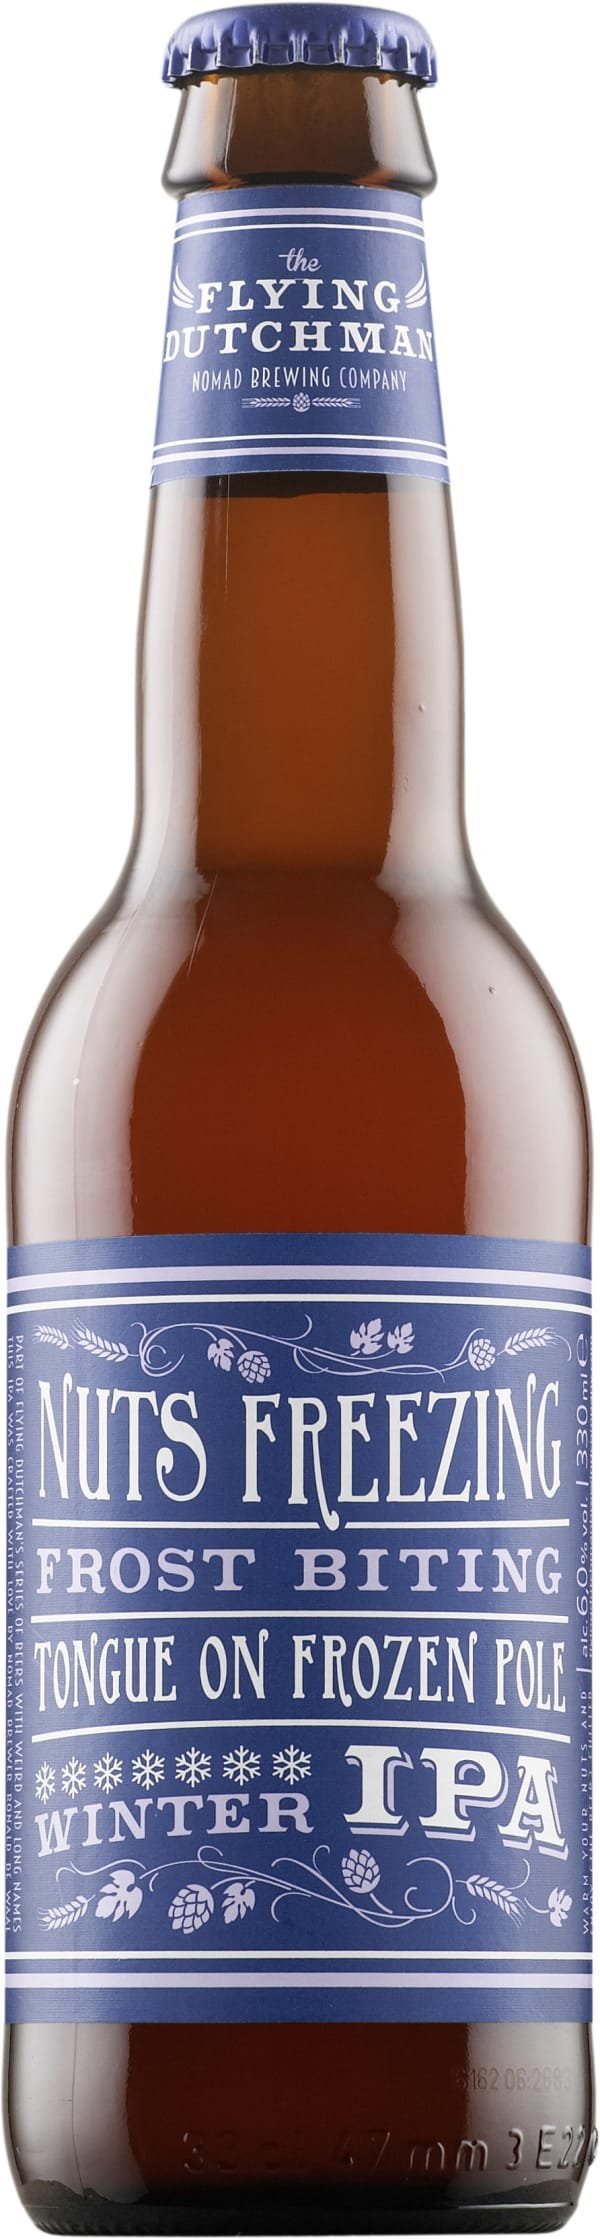 Flying Dutchman Nuts Freezing Frost Biting Tongue on Frozen Pole IPA